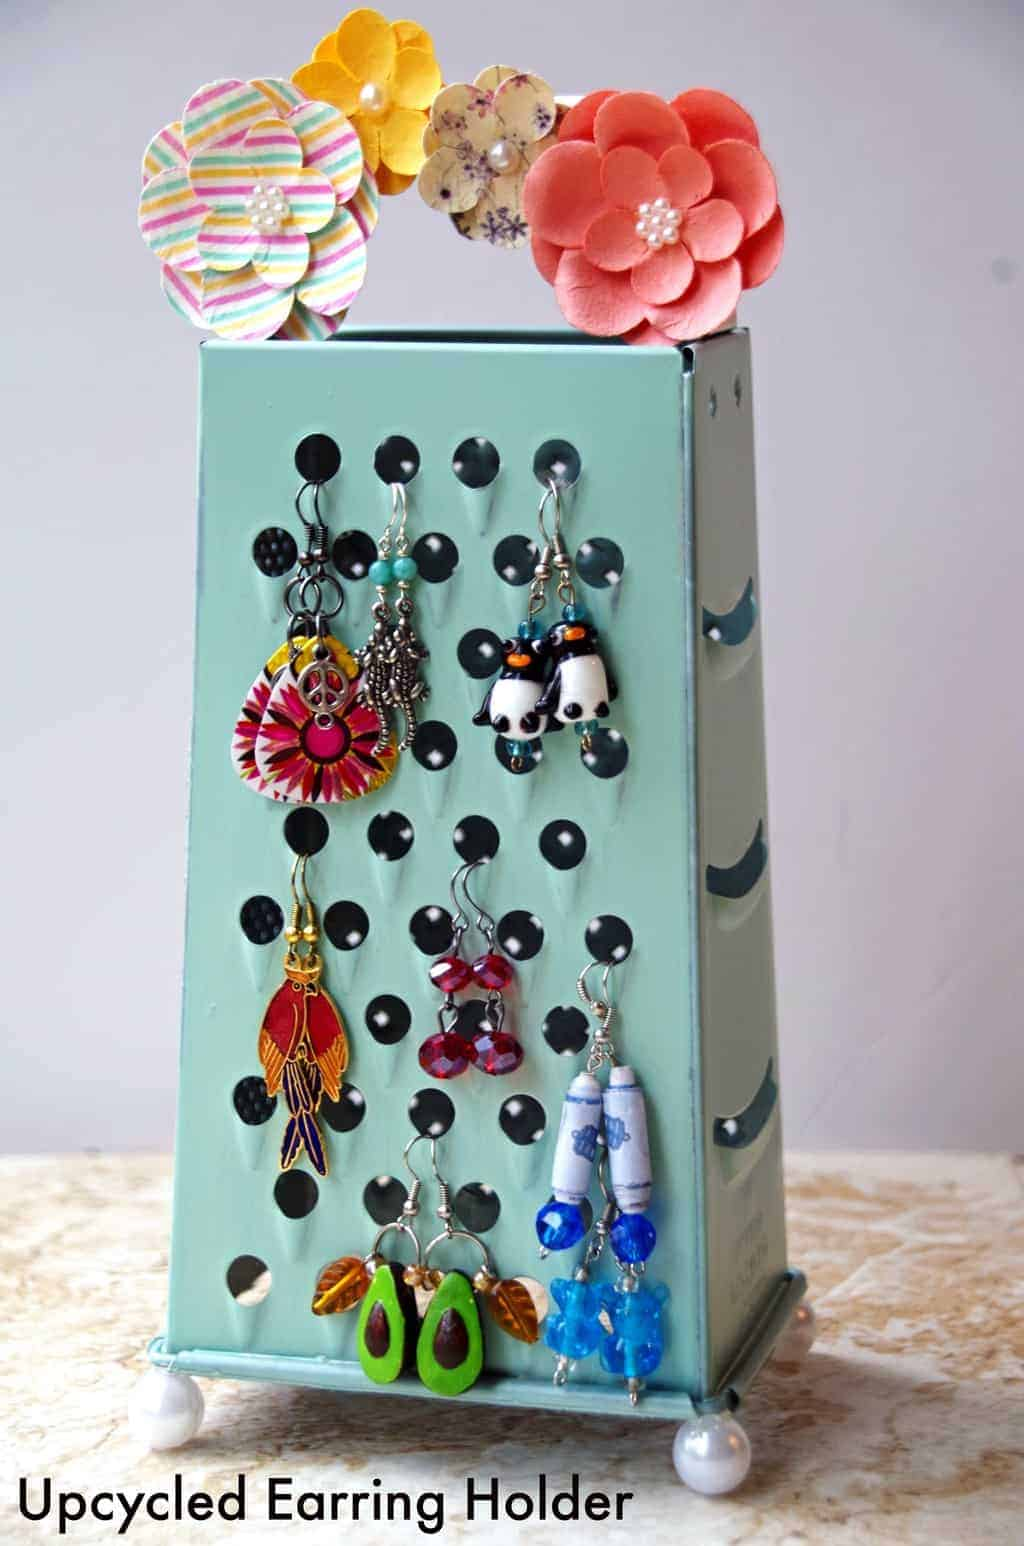 Homemade Earring Holder From An Upcycled Cheese Grater